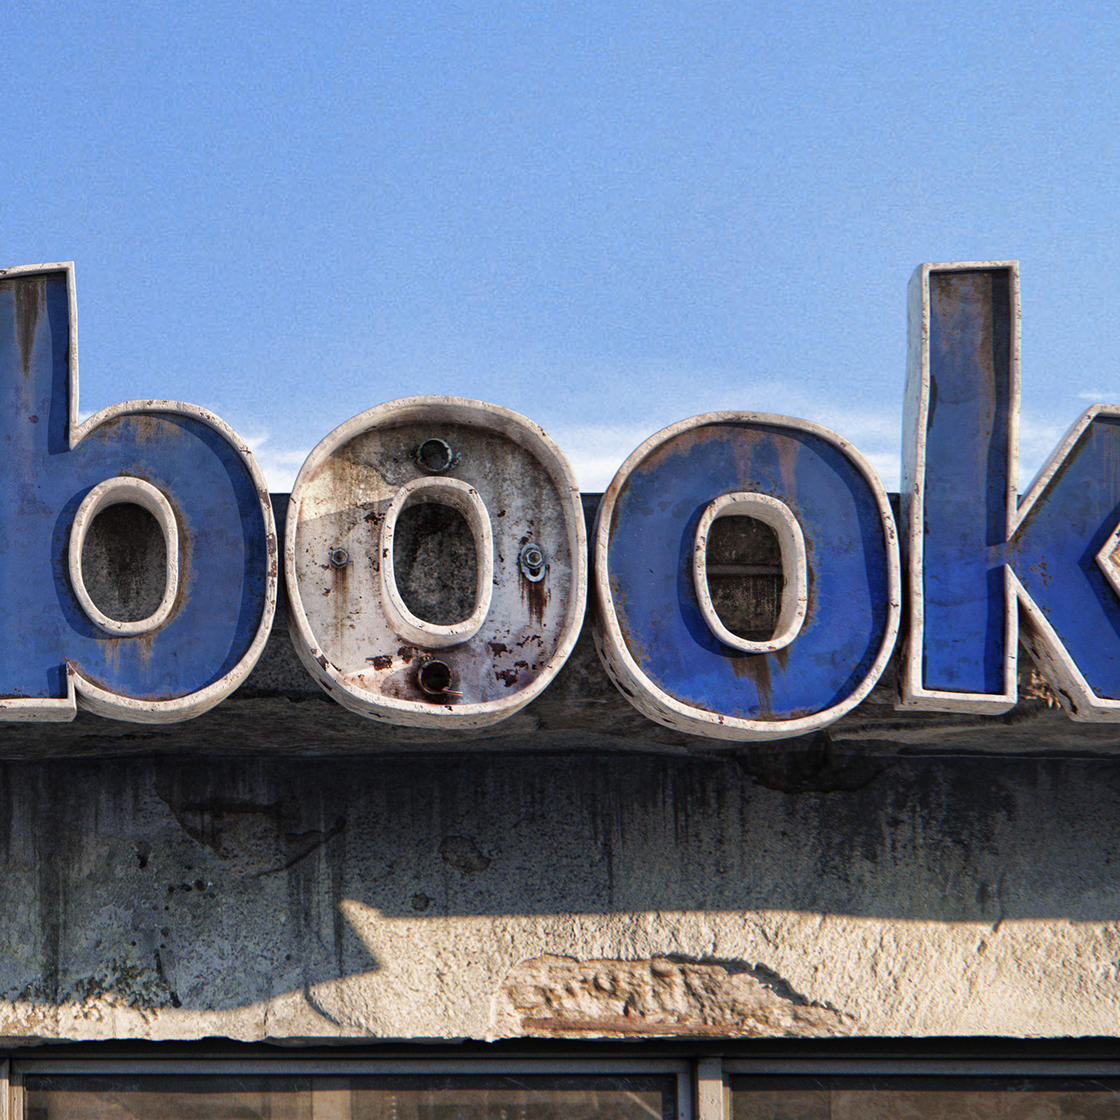 Social Decay – When social networks will be nothing more than ruins